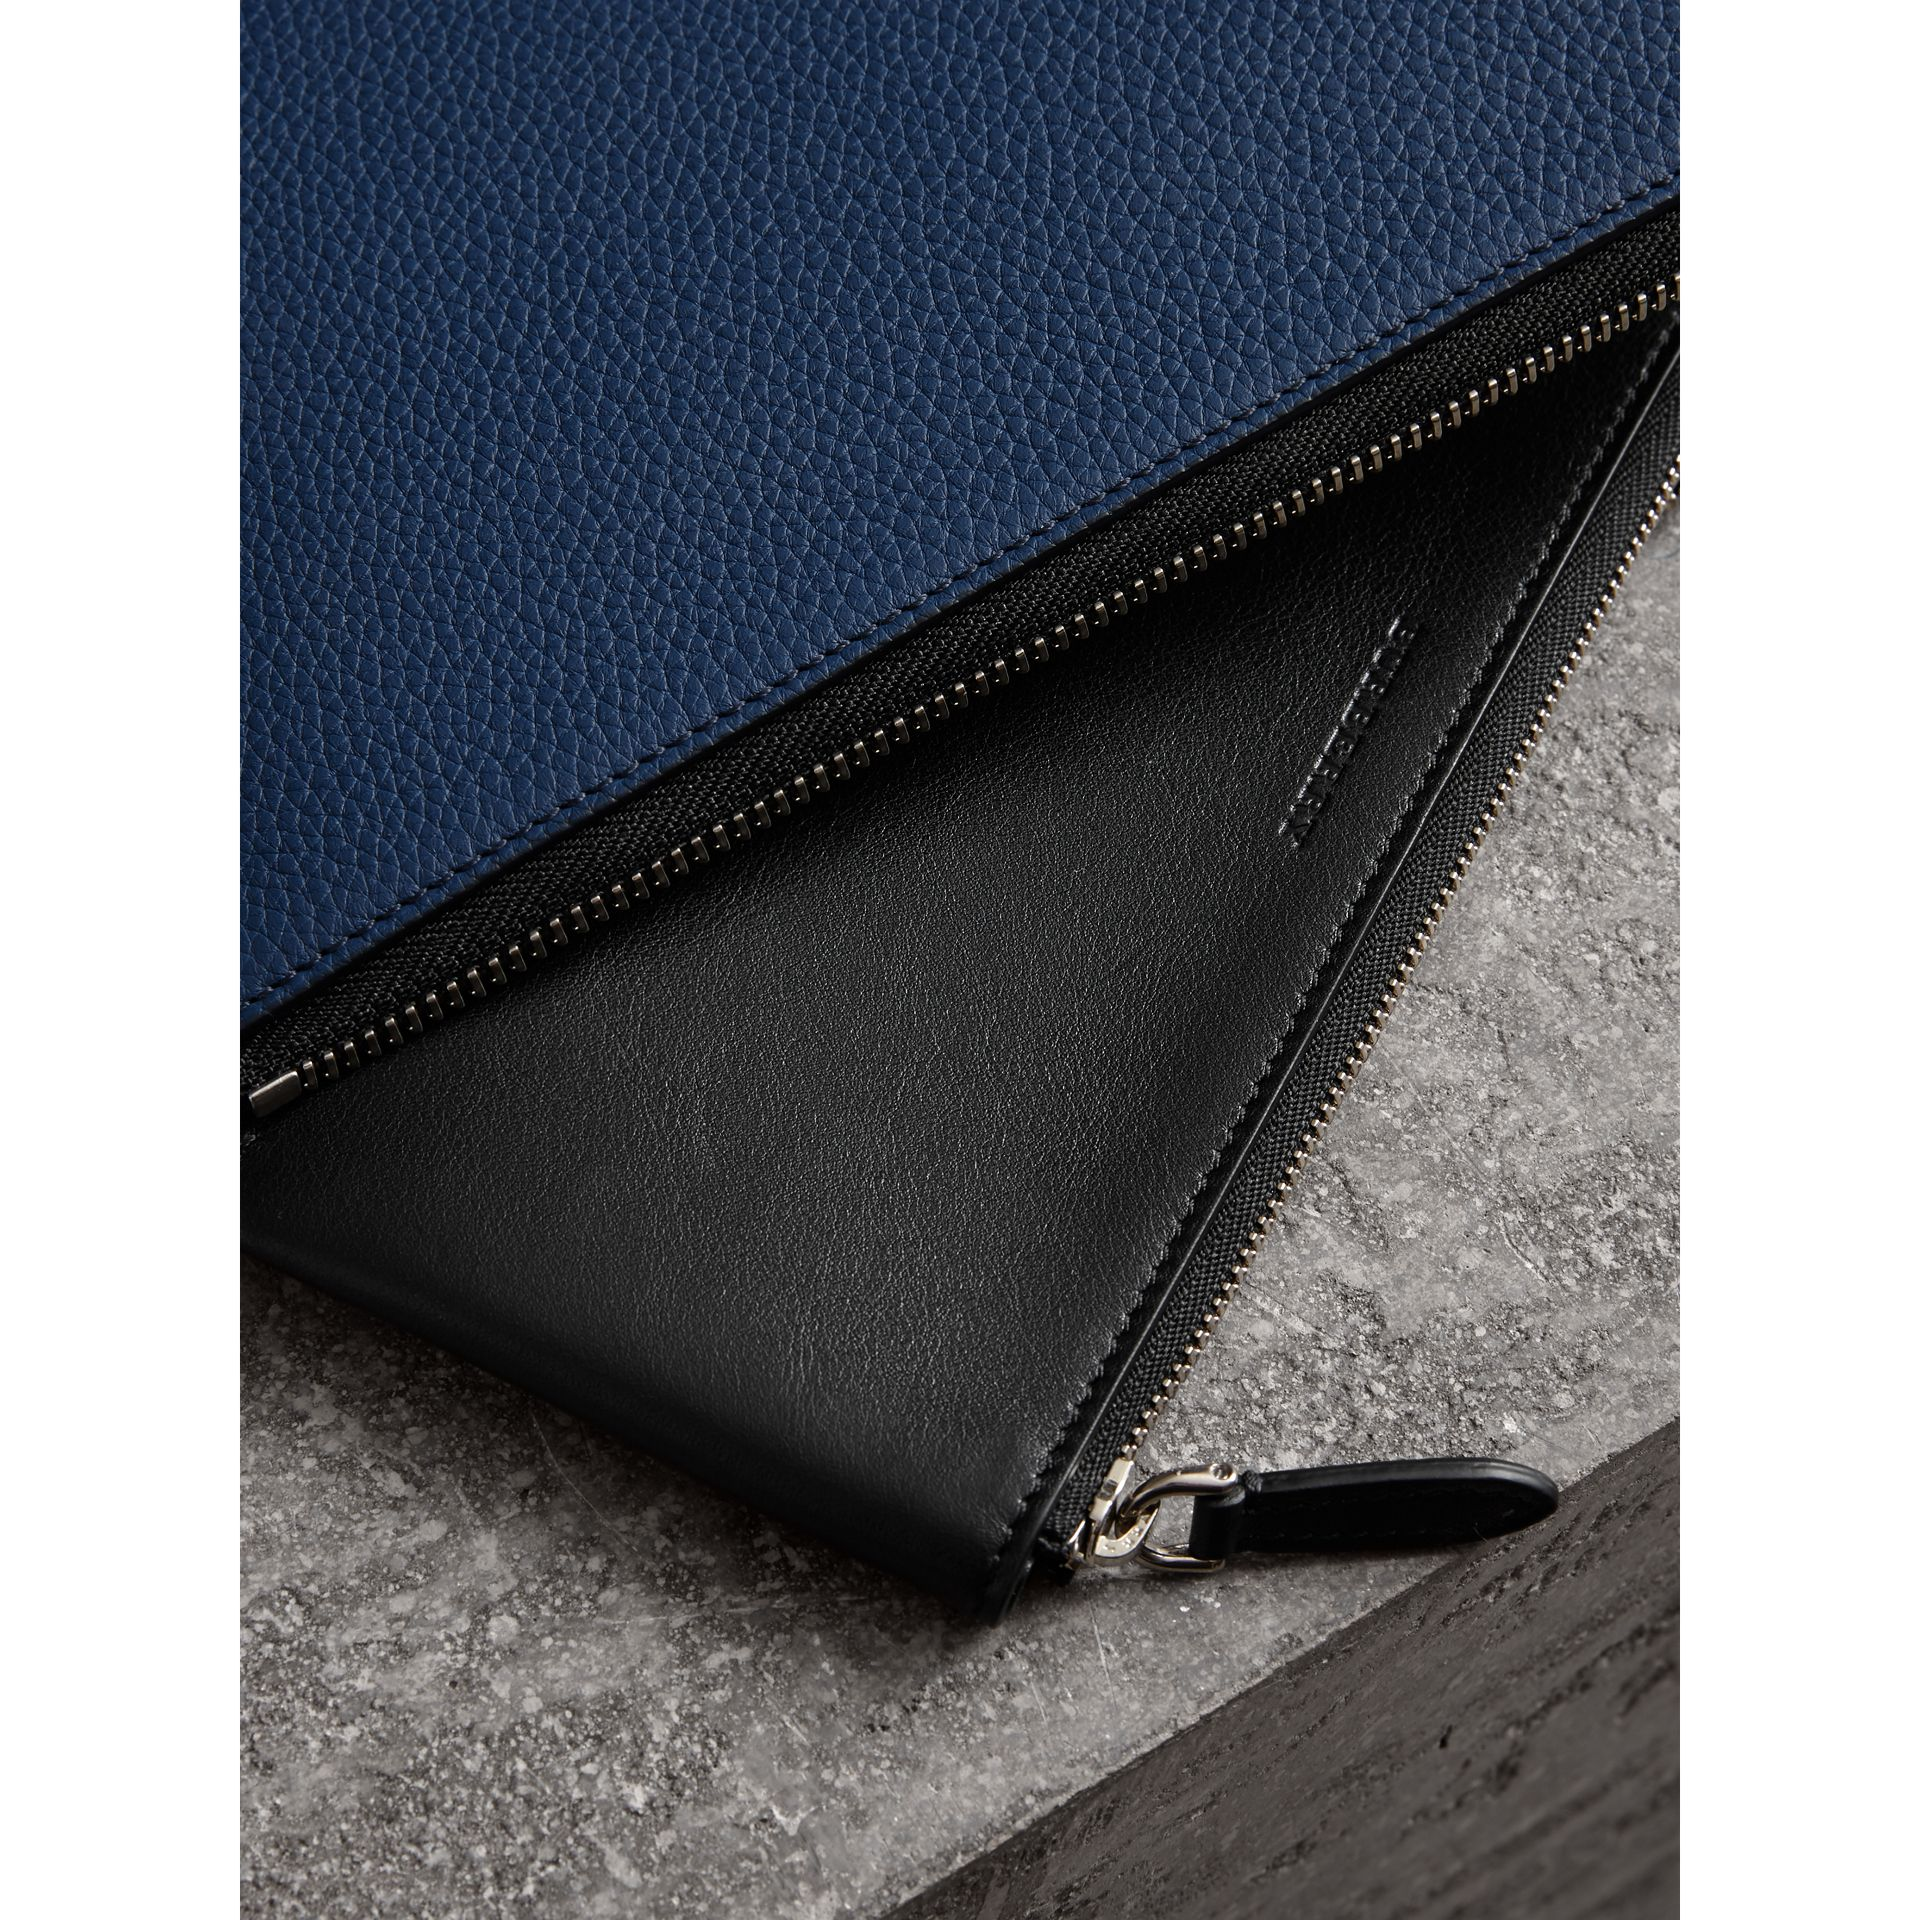 Two-tone Grainy Leather Travel Wallet in Bright Ultramarine - Men | Burberry United Kingdom - gallery image 4